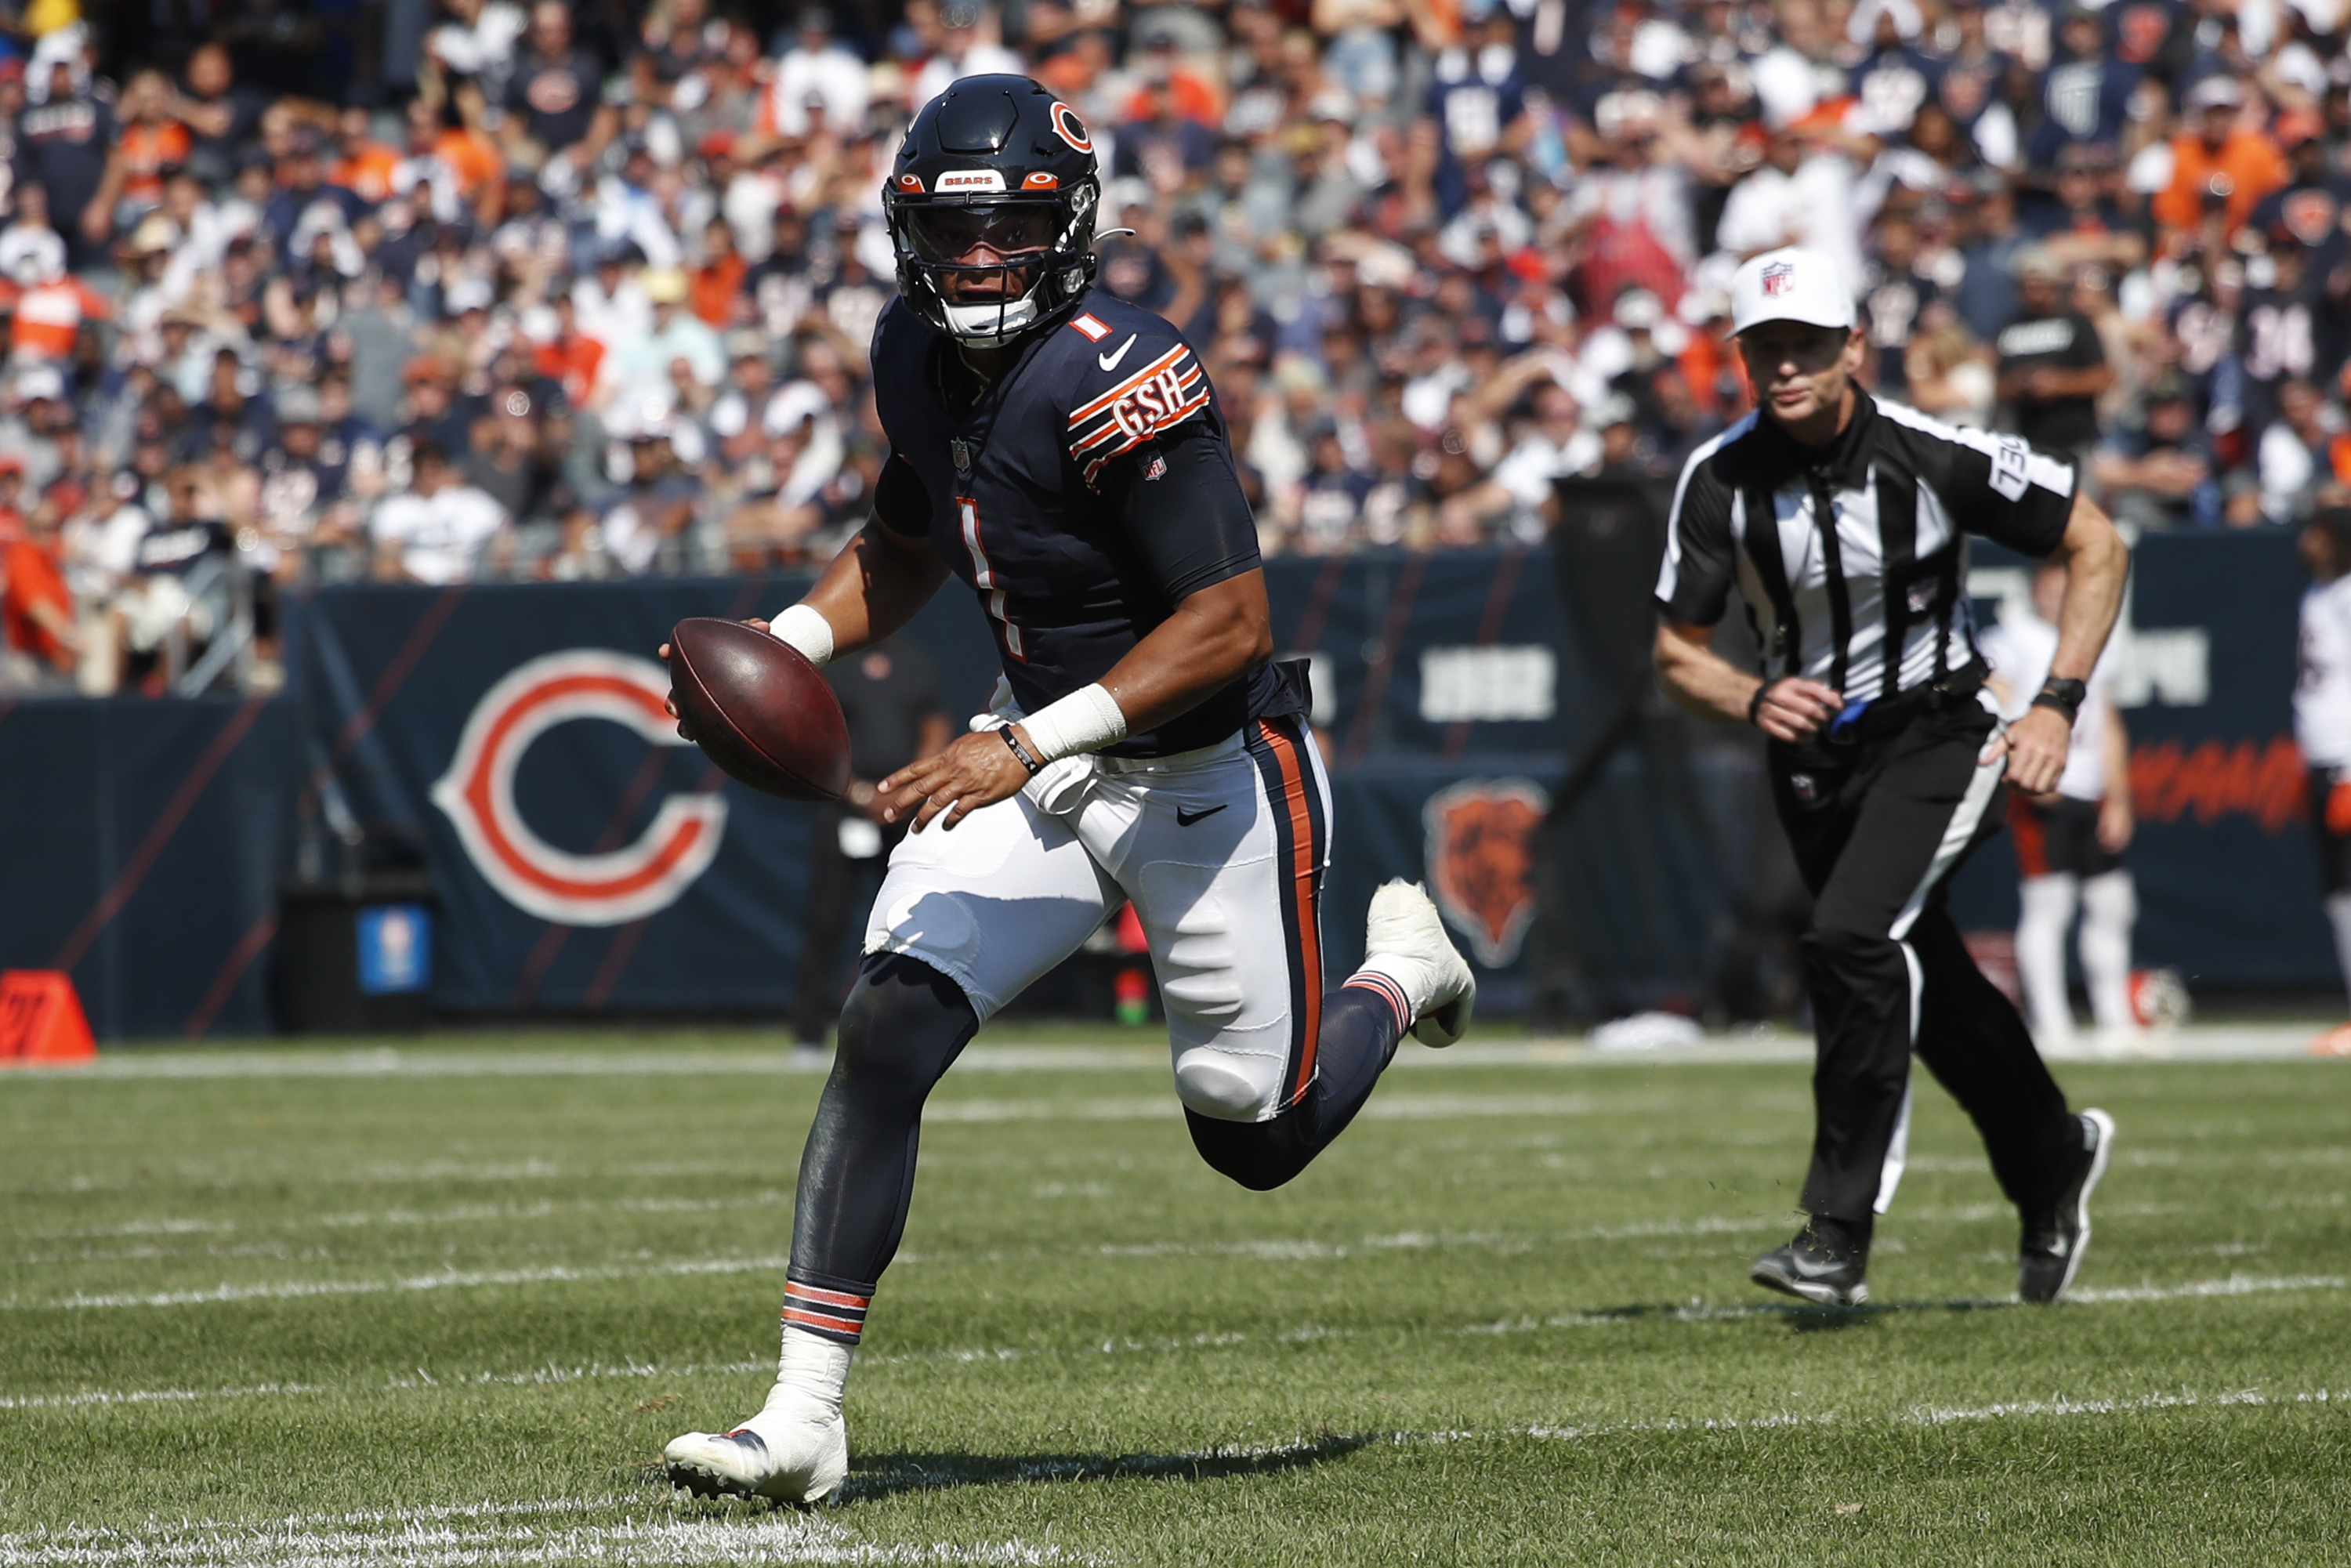 Bears quarterback Justin Fields (1) gained 35 yards on seven carries against the Bengals on Sunday, excluding three kneel-downs at the end of the game.